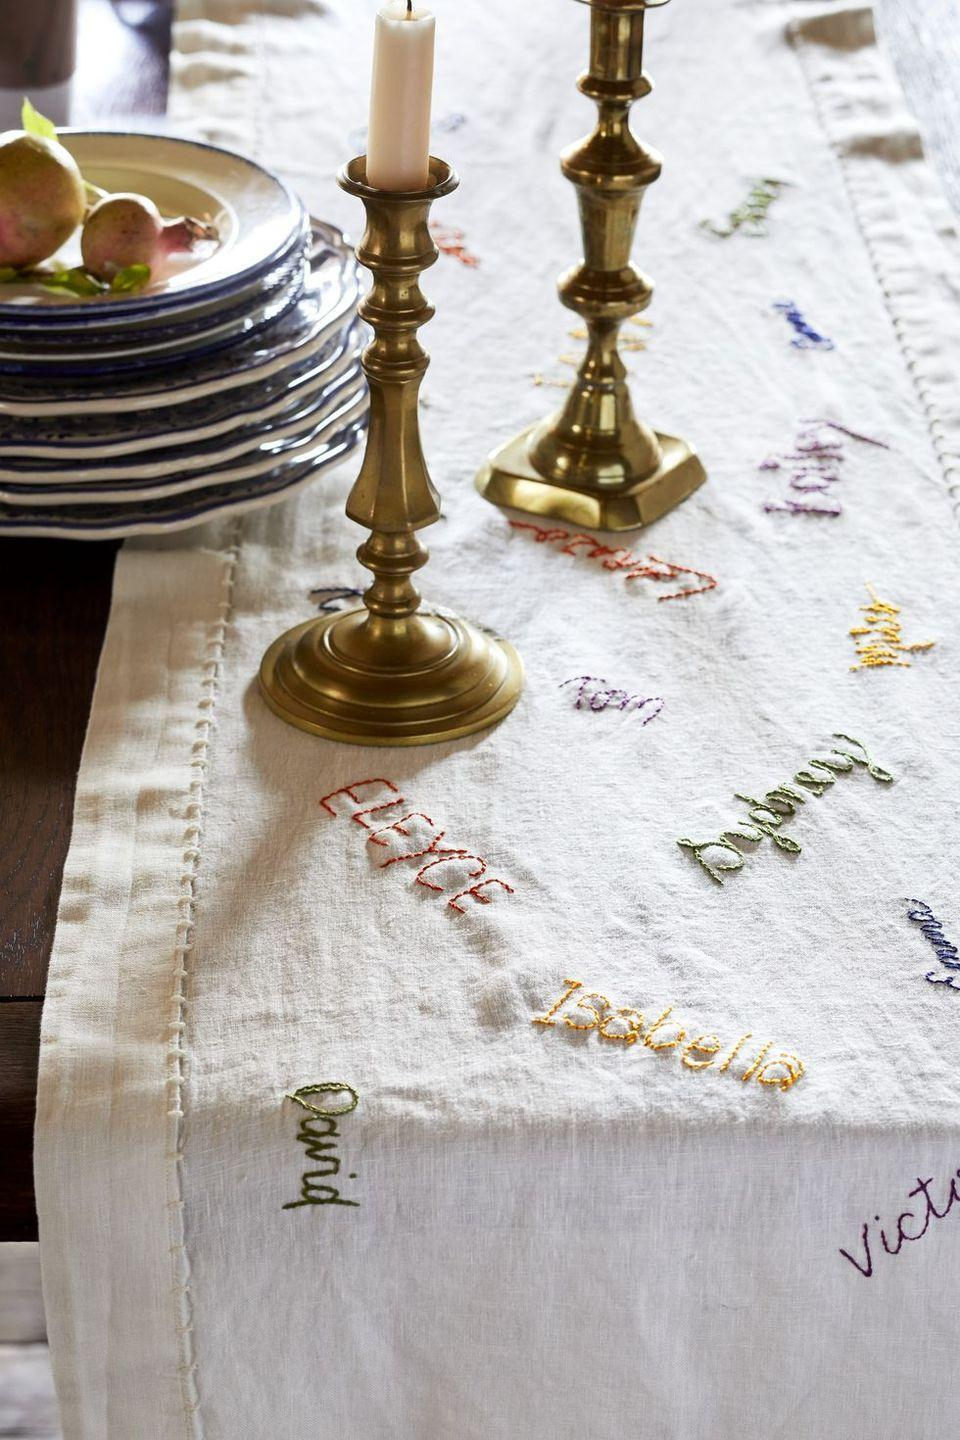 "<p>Remember Thanksgiving guests from years past with a hand embroidered table runner. Have guests sign their names with a disappearing sewing pen and then stitch over each signature.</p><p> <a class=""link rapid-noclick-resp"" href=""https://www.amazon.com/Disappearing-Marking-Erasable-Temporary-Auto-Vanishing/dp/B01I86OFH6/ref=sr_1_1?tag=syn-yahoo-20&ascsubtag=%5Bartid%7C10050.g.2063%5Bsrc%7Cyahoo-us"" rel=""nofollow noopener"" target=""_blank"" data-ylk=""slk:SHOP DISAPPEARING PENS"">SHOP DISAPPEARING PENS</a></p>"